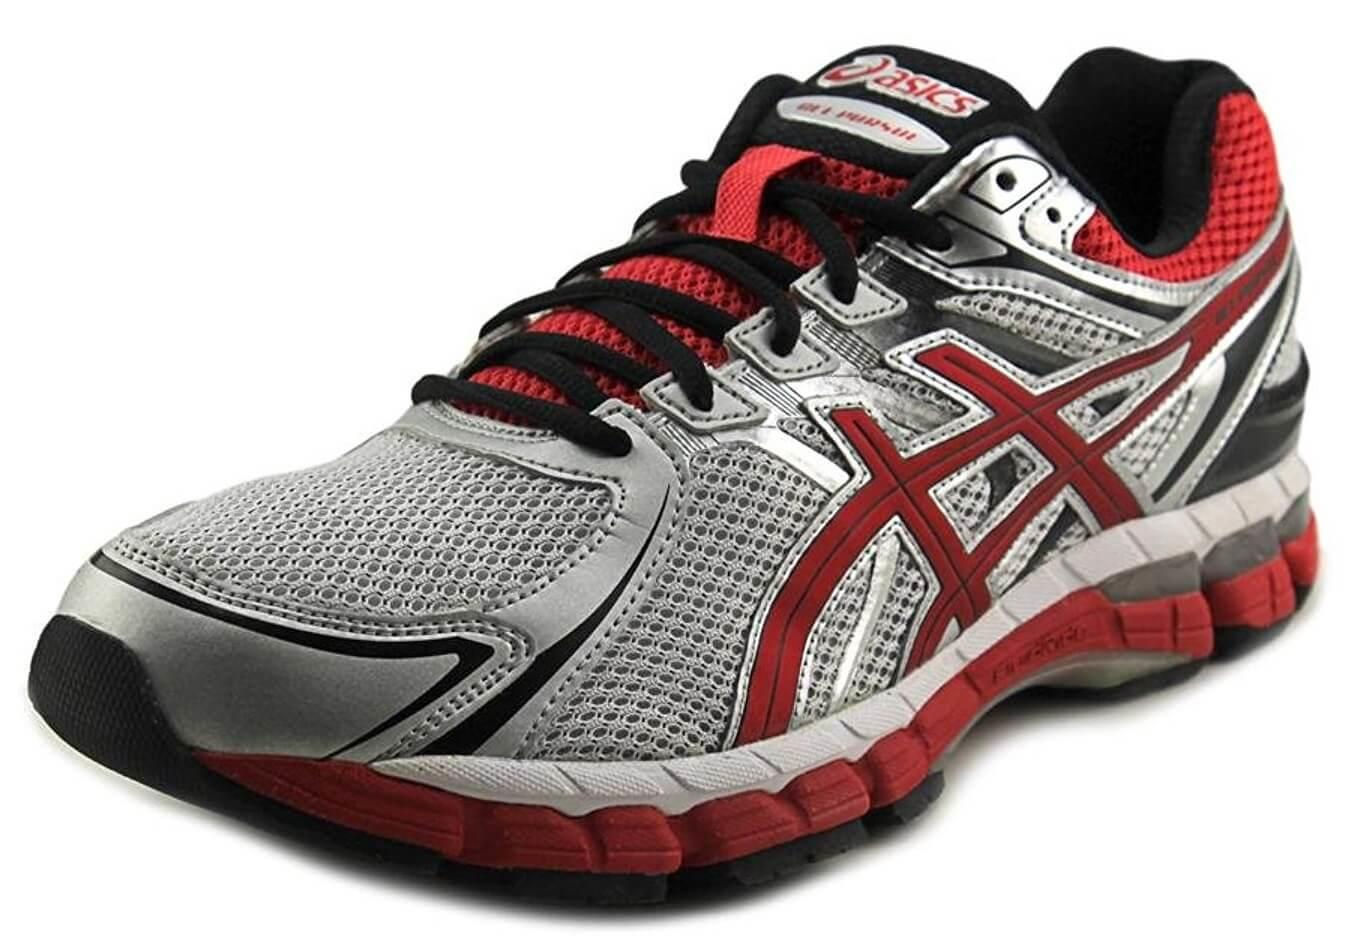 A three quarter view of the Asics Gel Pursue 2